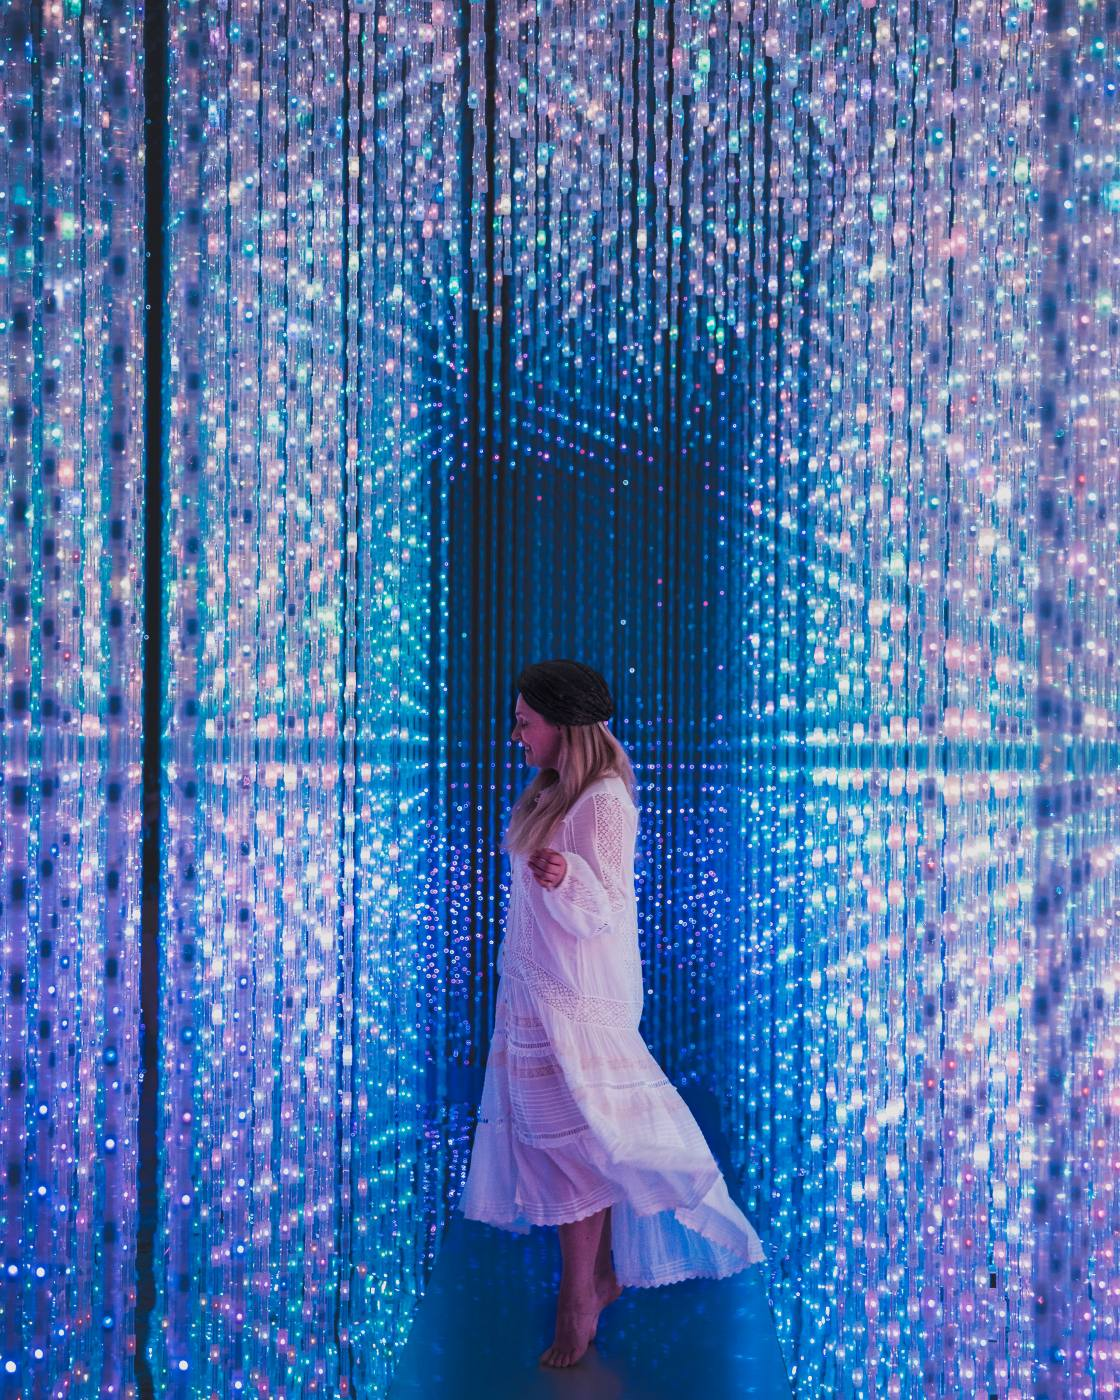 How to visit teamLab Borderless in Japan or ArtScience Museum in Singapore?